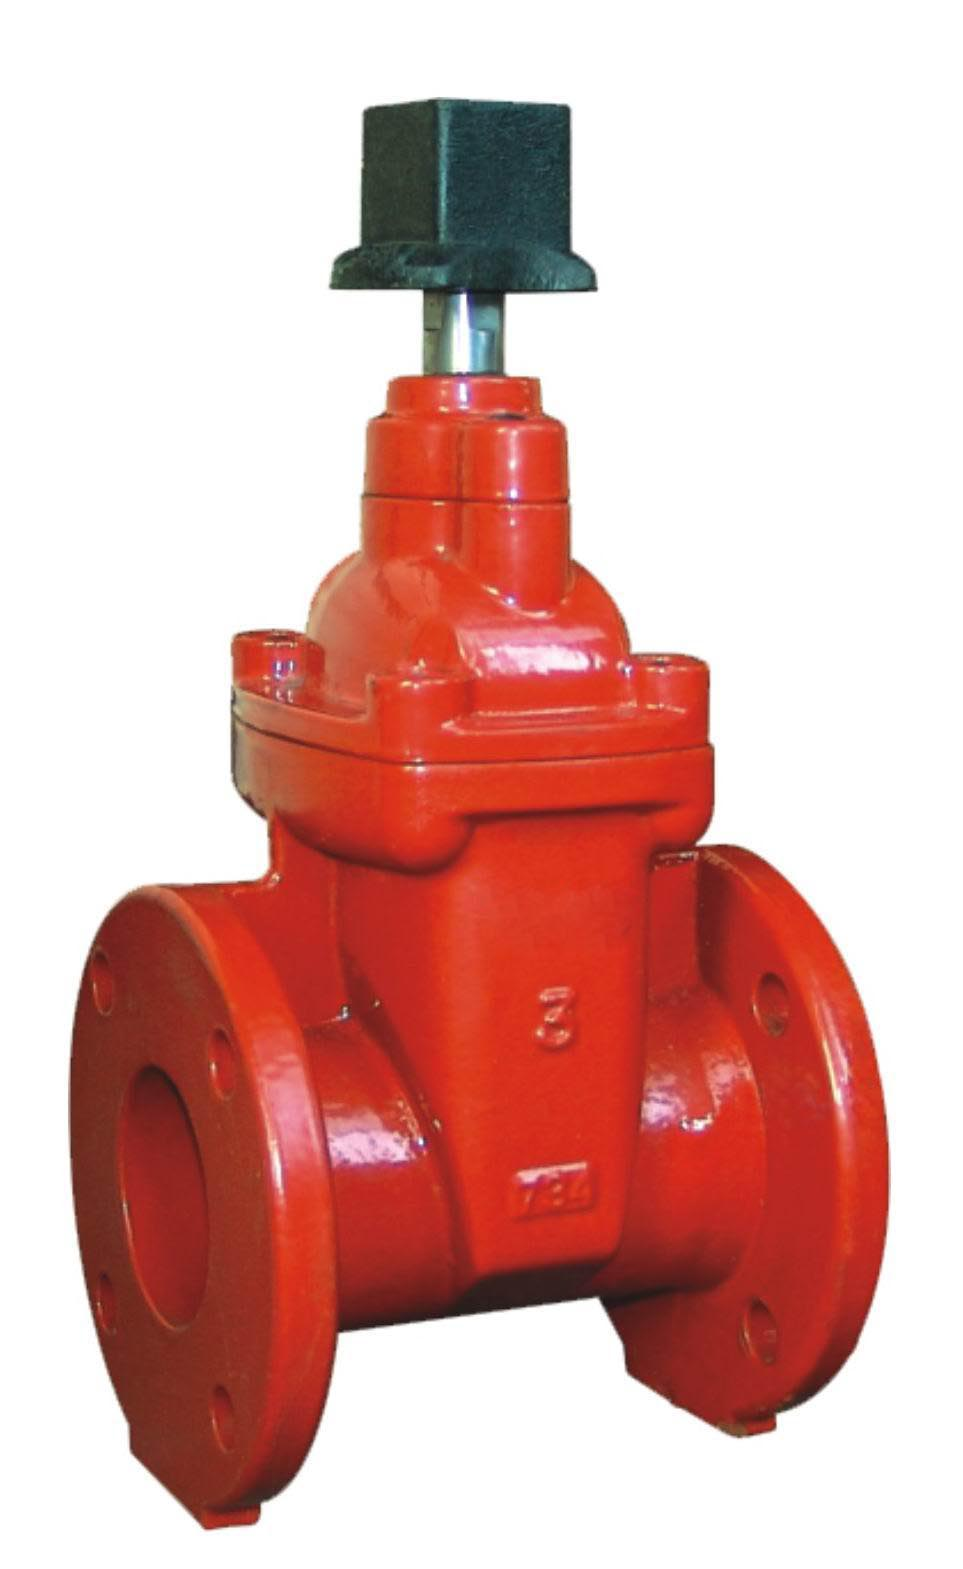 Flanged Ends NRS Resilient Seated Gate Valves-AWWA C509-UL FM Approval